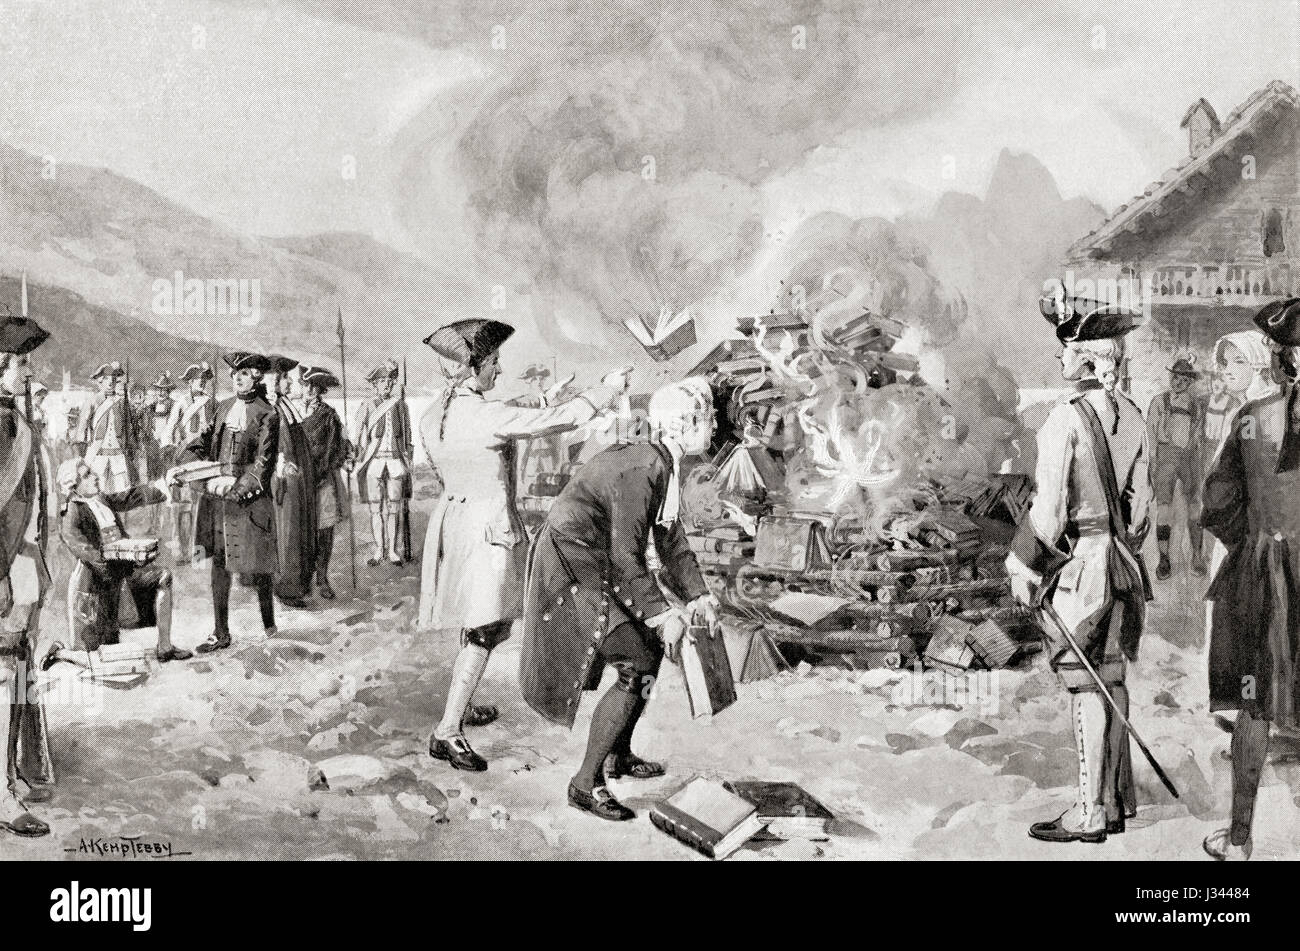 Rousseau's Contrat Social publicly burned at Geneva, Switzerland in 1763. Jean-Jacques Rousseau, 1712 – 1778. - Stock Image